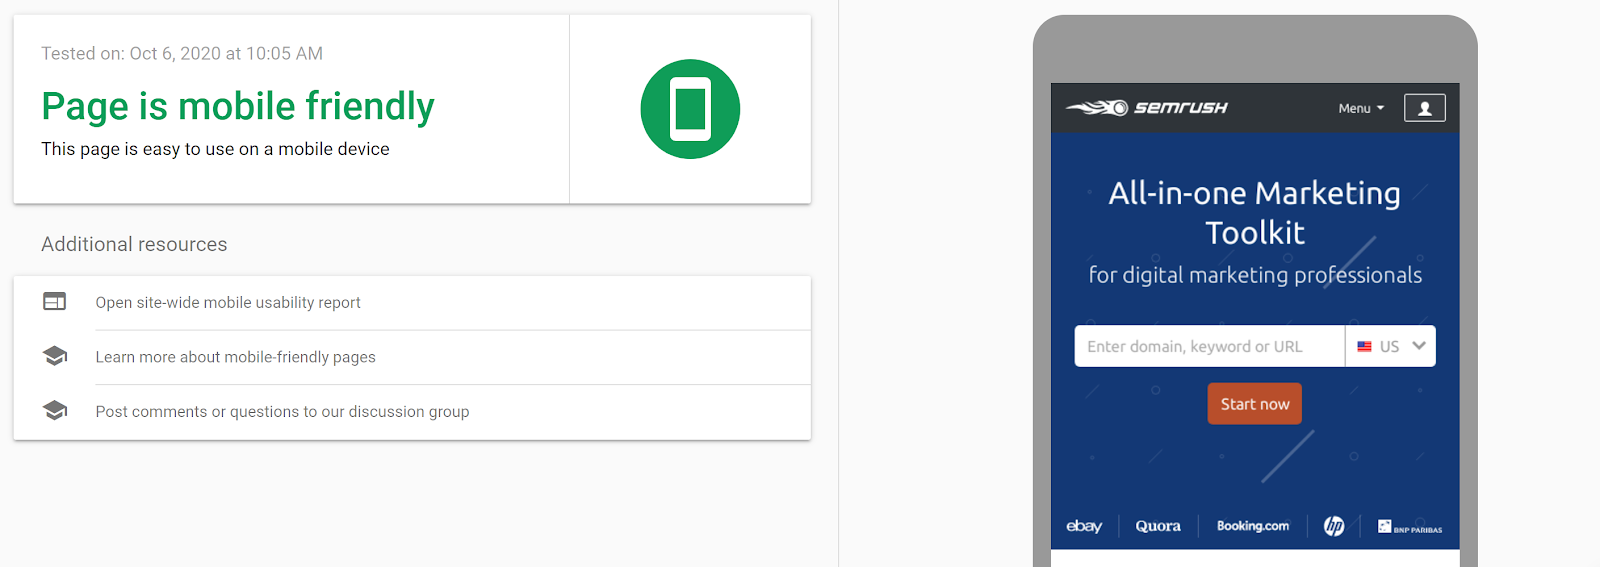 Google Mobile-Friendly Test Tool screenshot